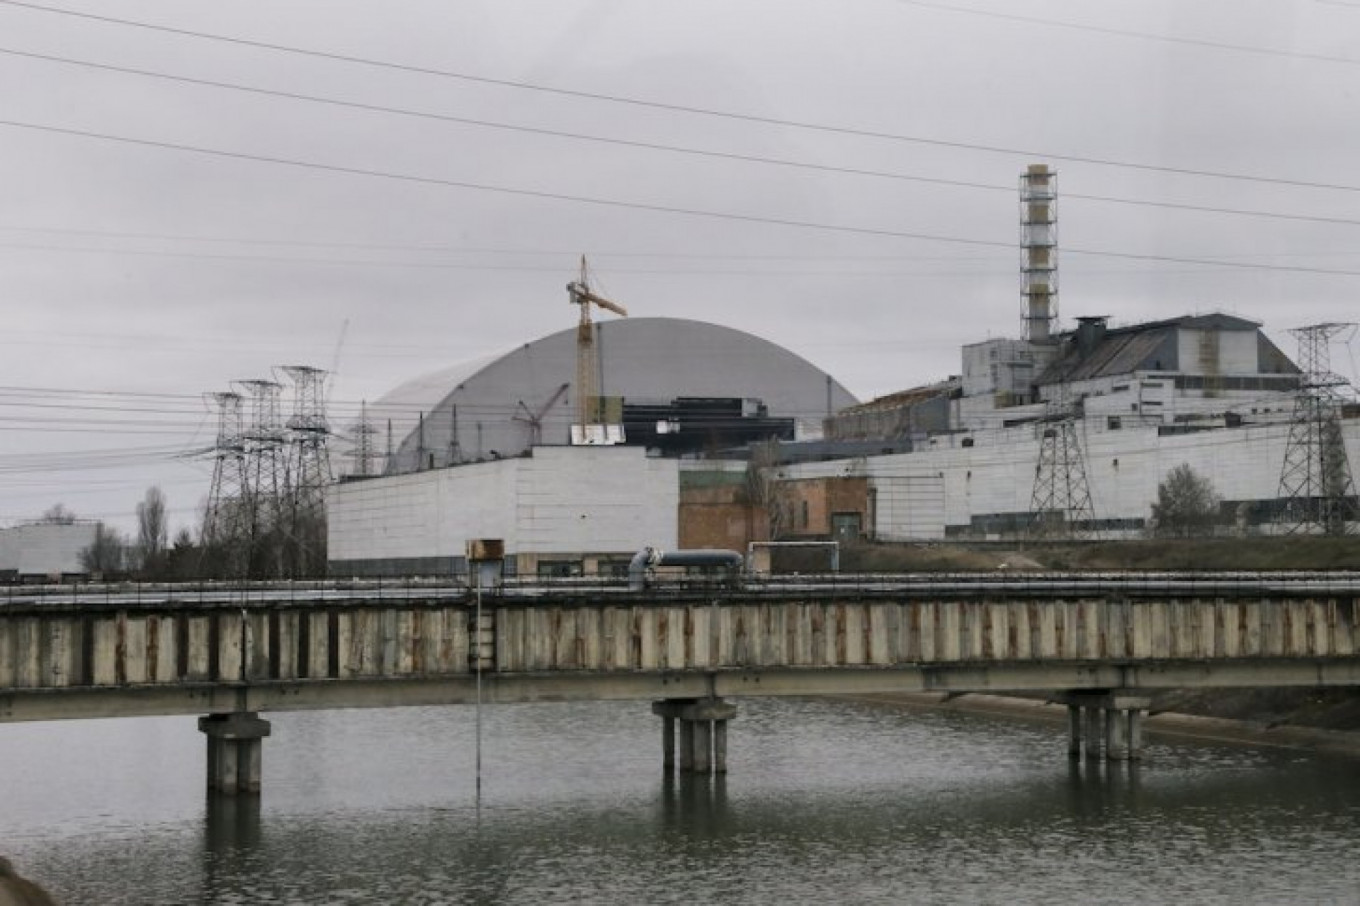 Remembering the Chernobyl Nuclear Disaster, 33 Years Later